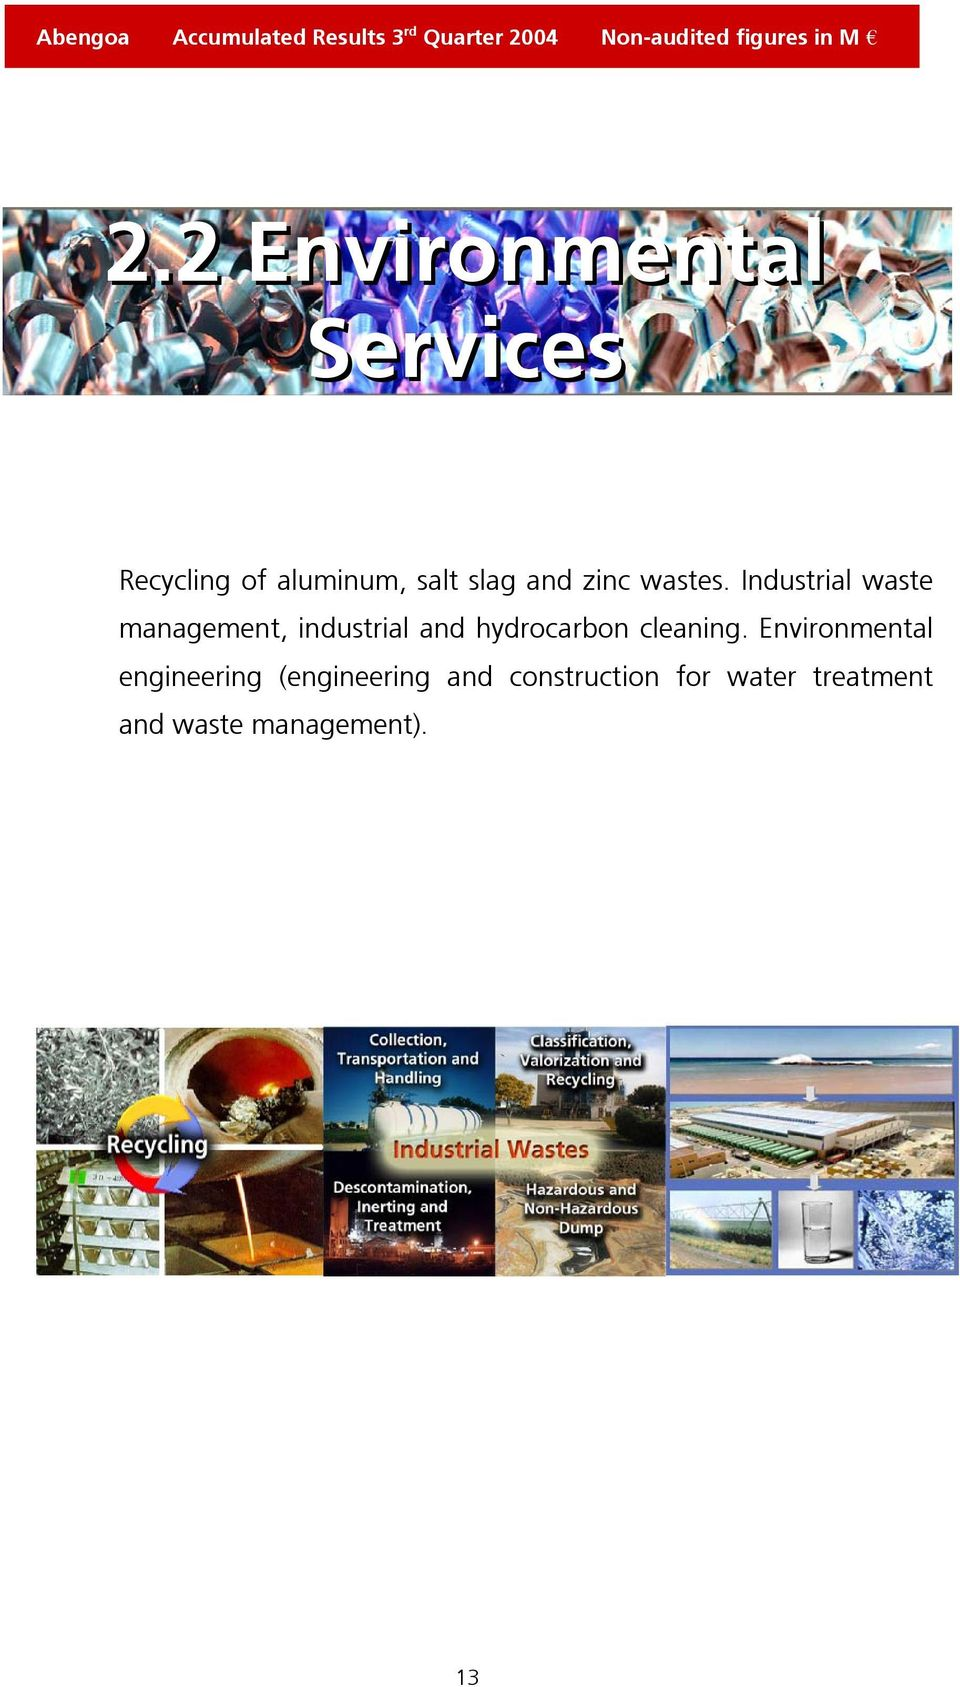 Industrial waste management, industrial and hydrocarbon